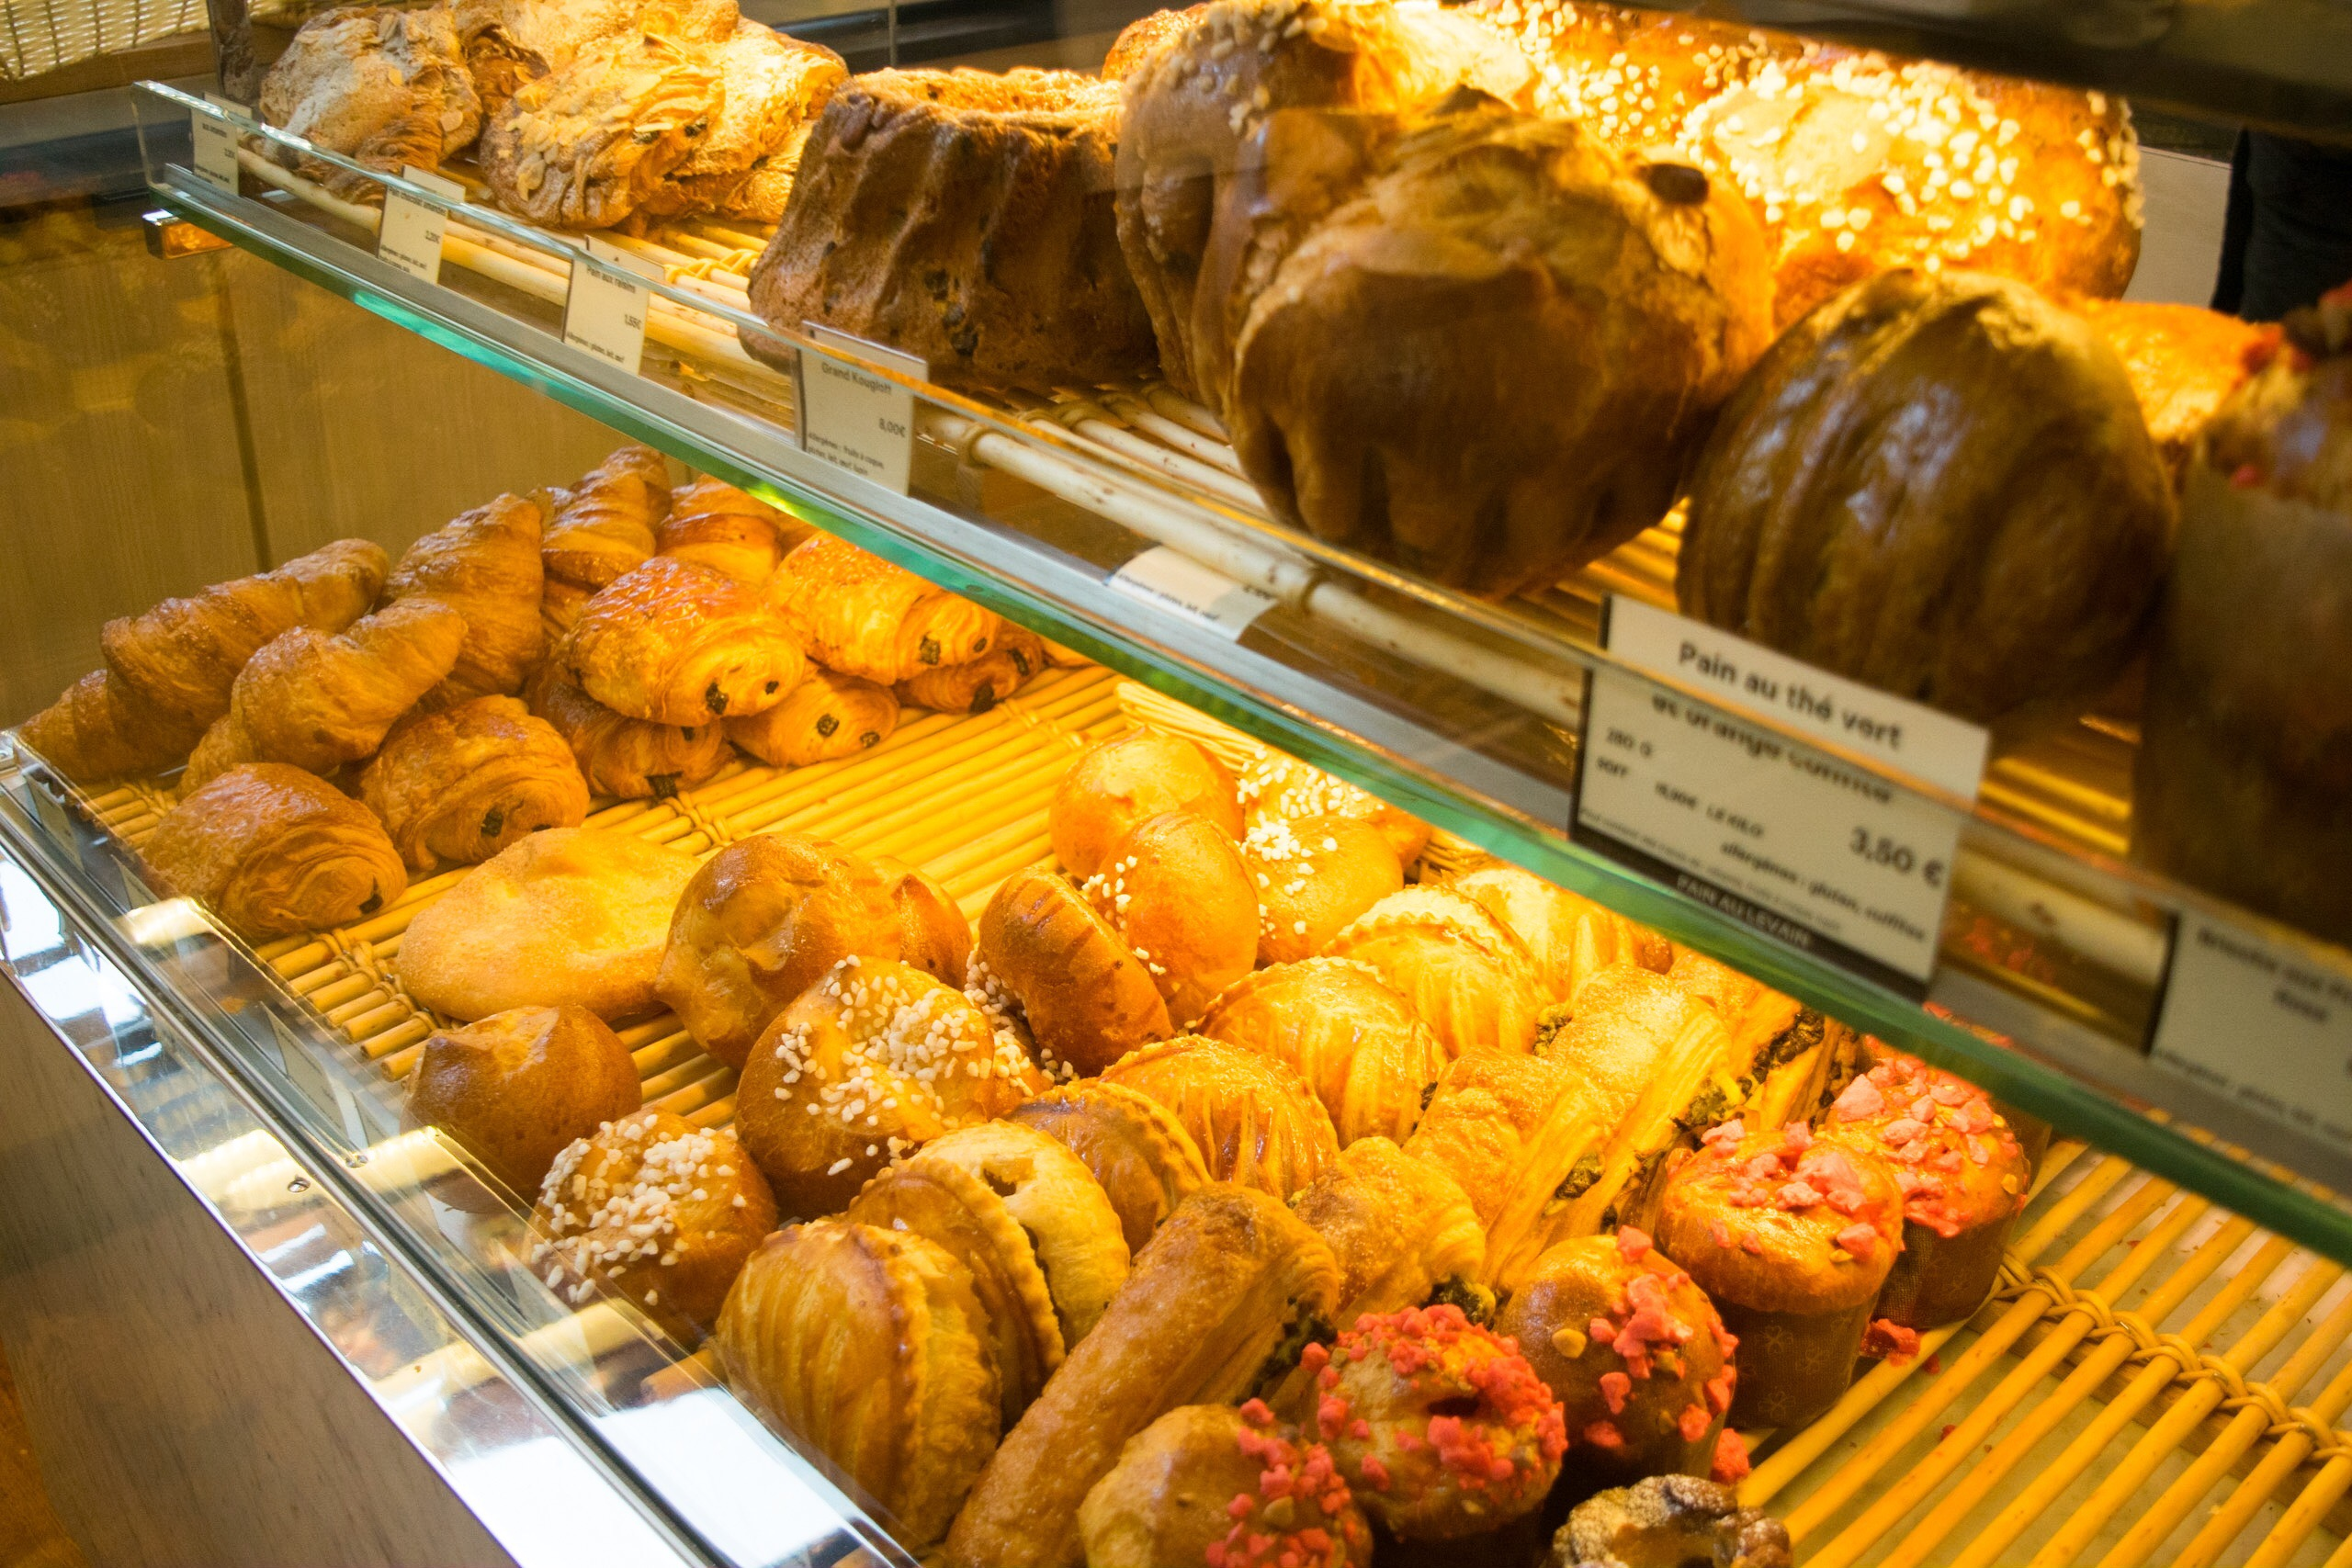 Pastries and Brioches